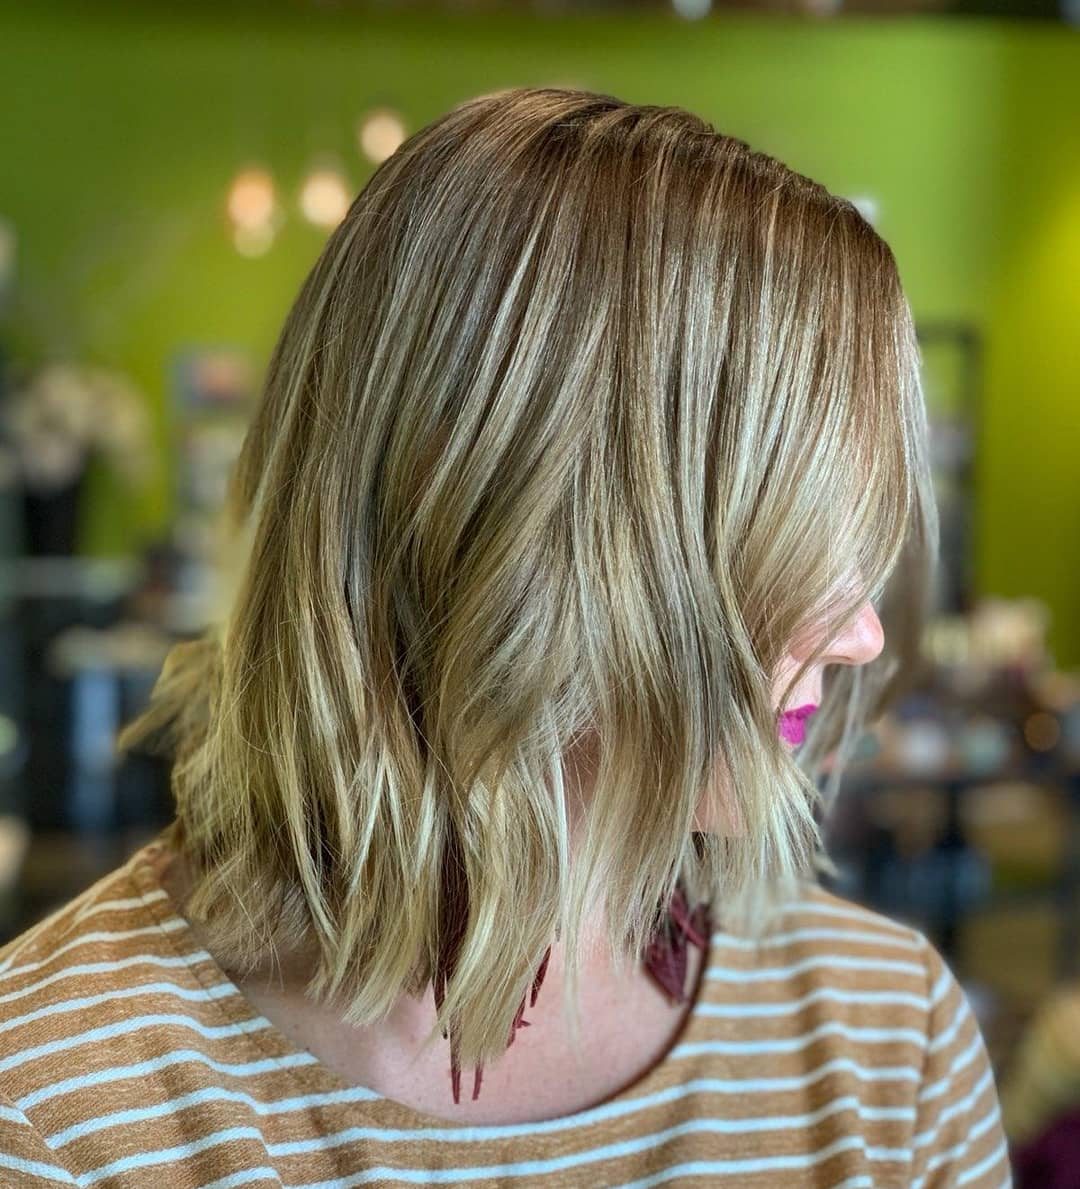 Cynthia Clients Artistik Edge Hair Studio Lake Highlands Texas Blond Bob.jpg